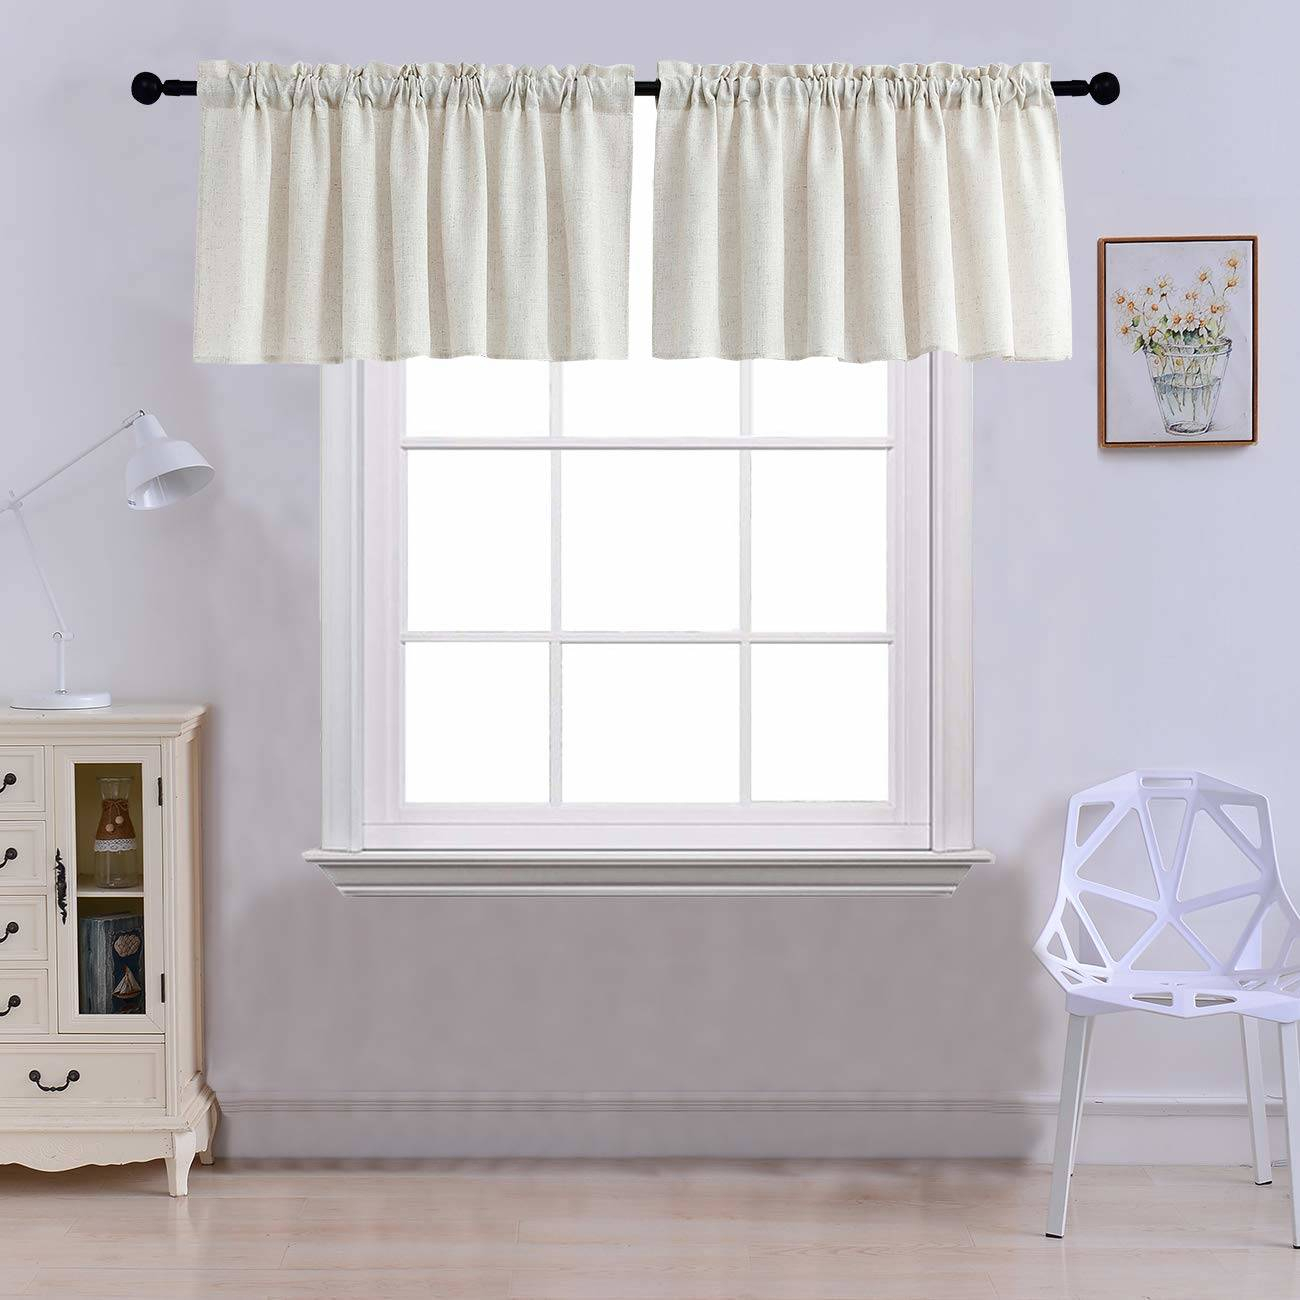 Awesome Curtains And Valences Pretty Decorating Valances With Regard To Semi Sheer Rod Pocket Kitchen Curtain Valance And Tiers Sets (View 1 of 20)